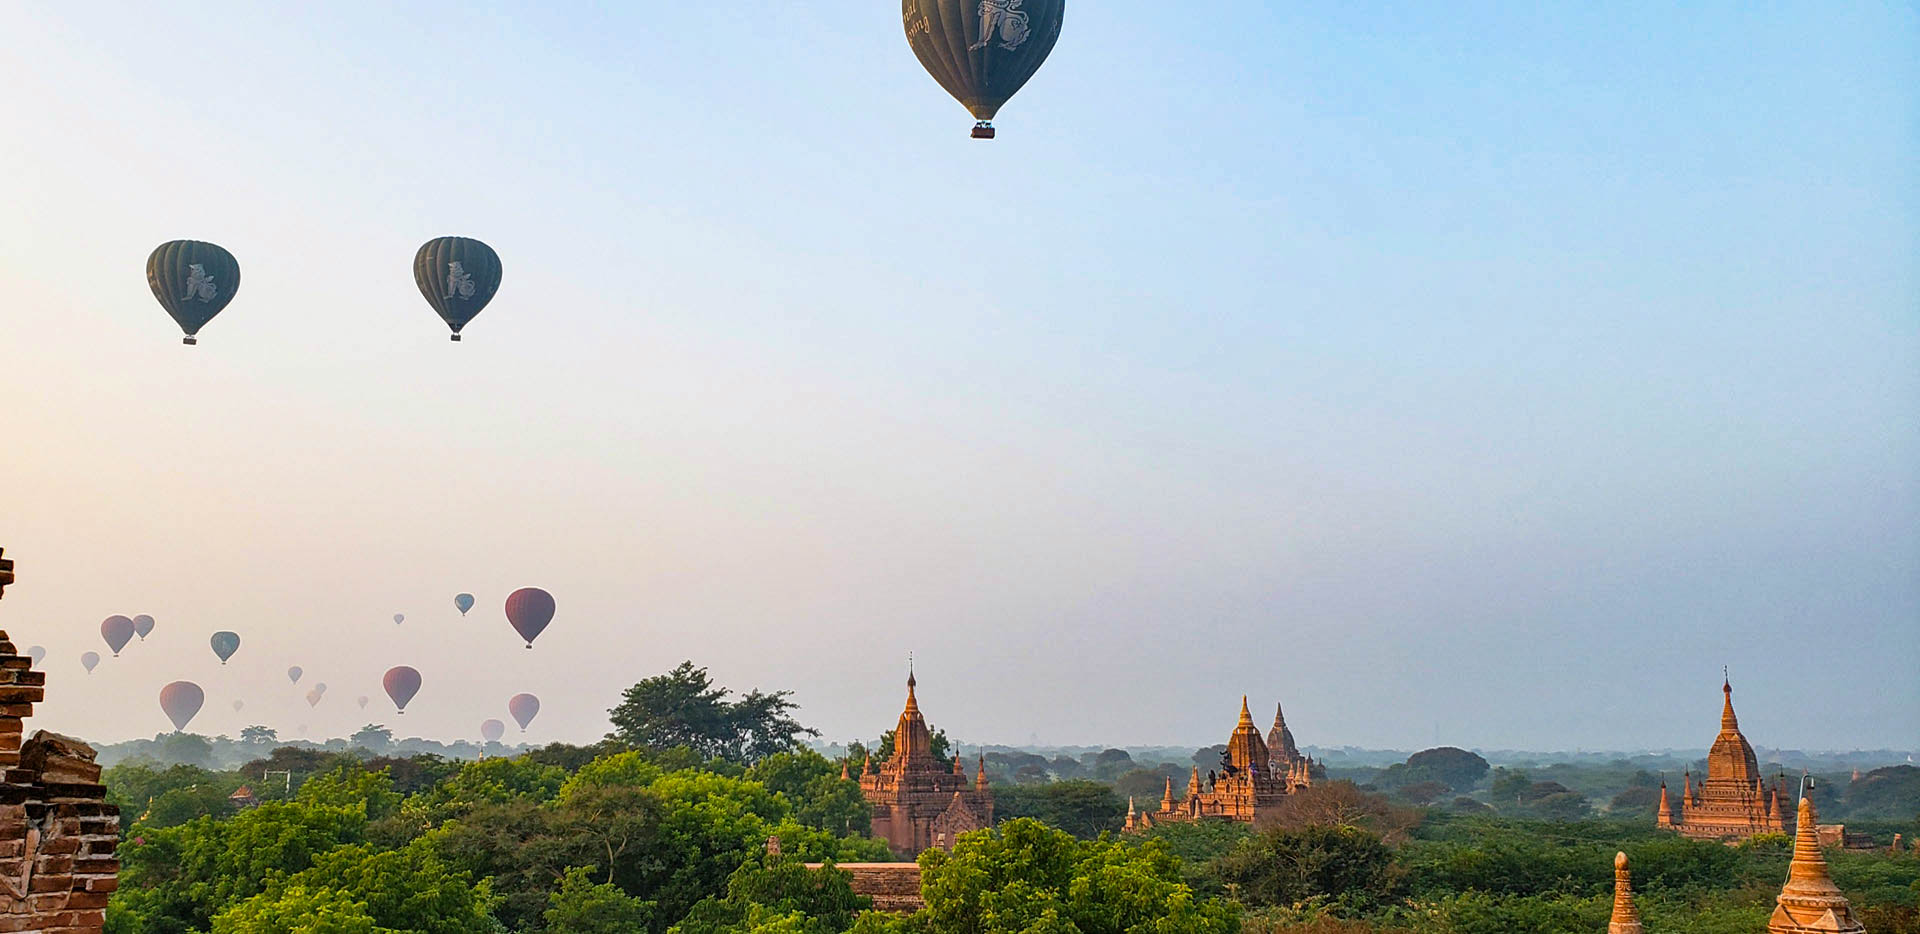 Pagodas and Balloons at Sunrise